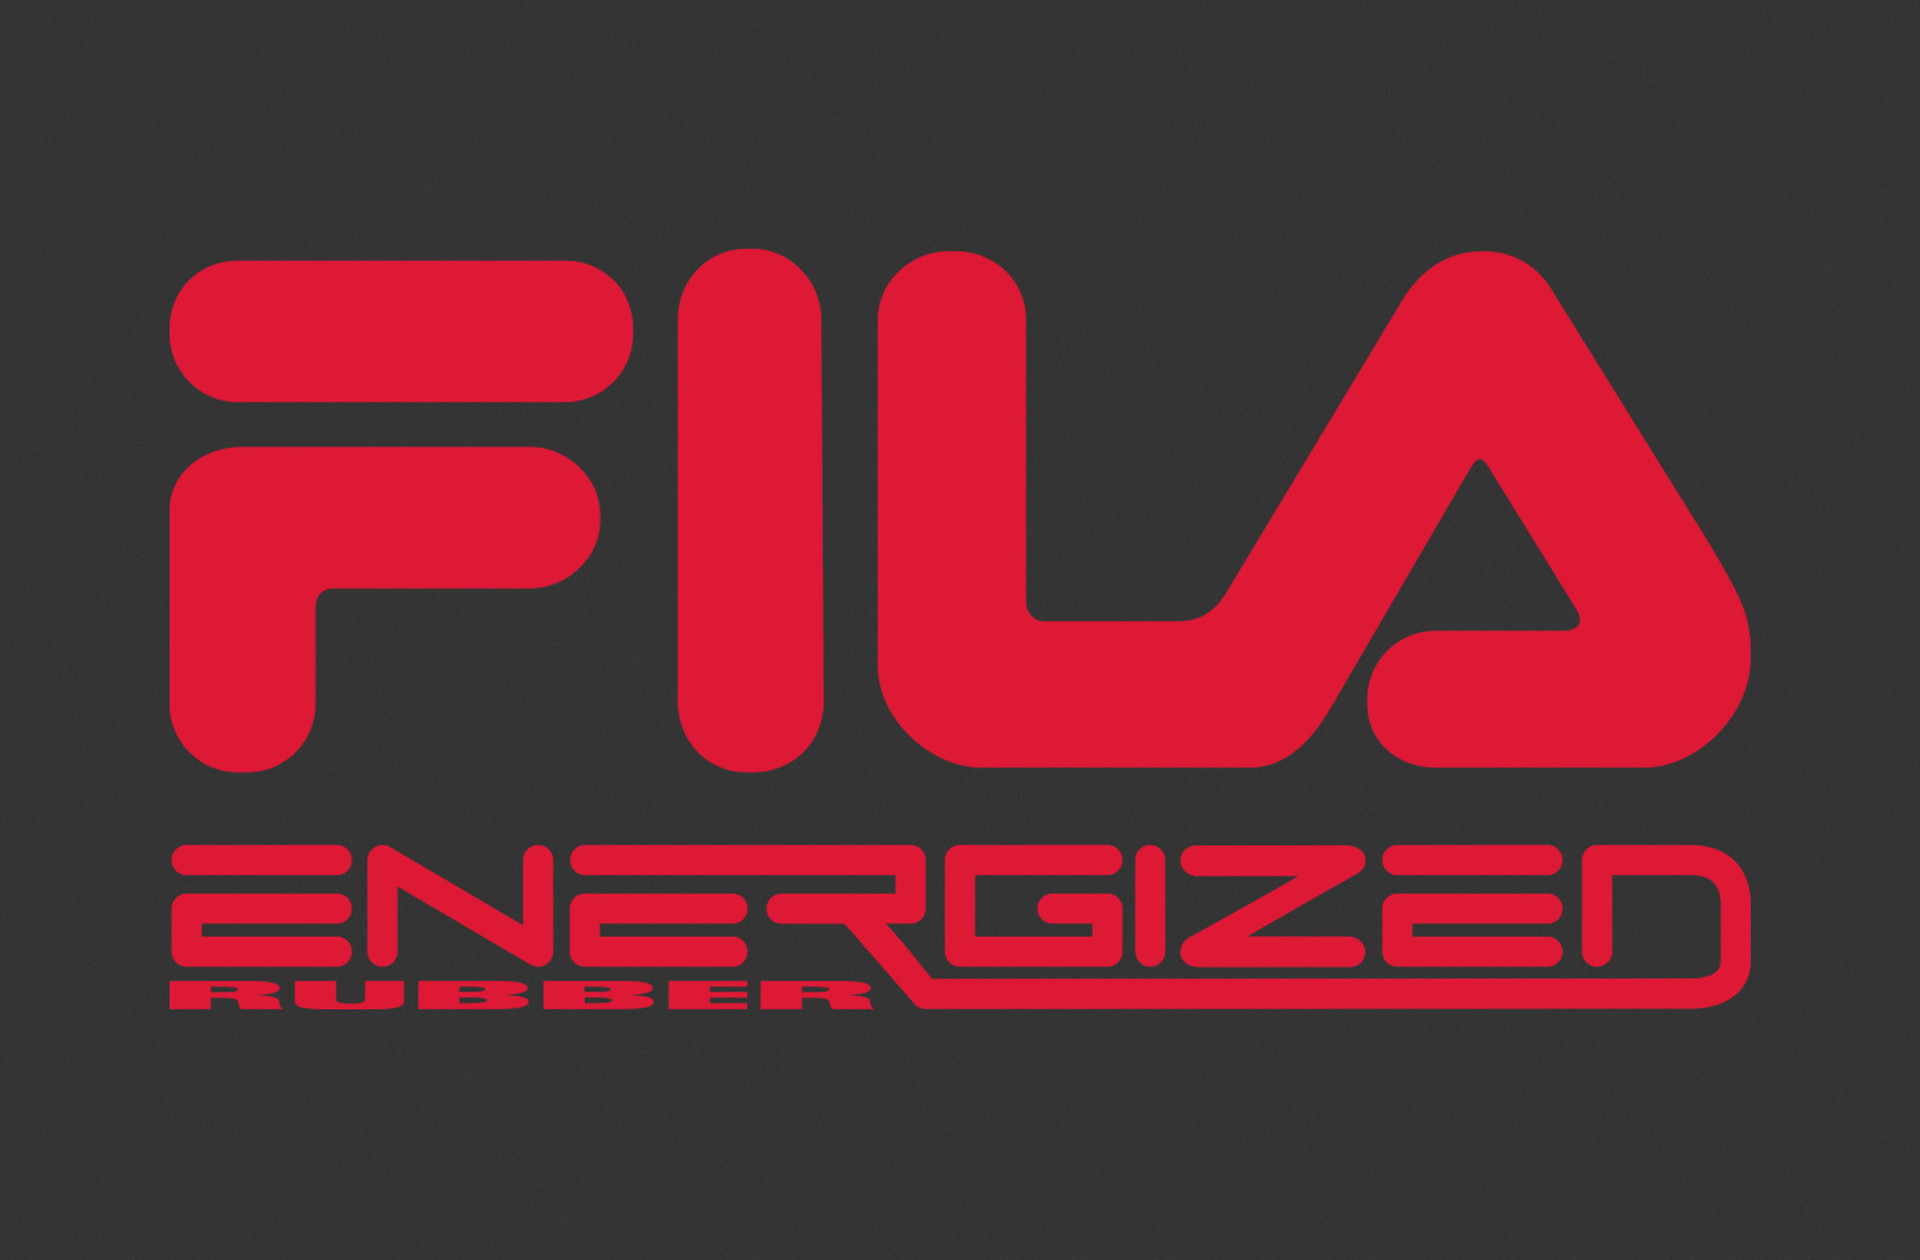 Fila - Energized Box 1.jpg